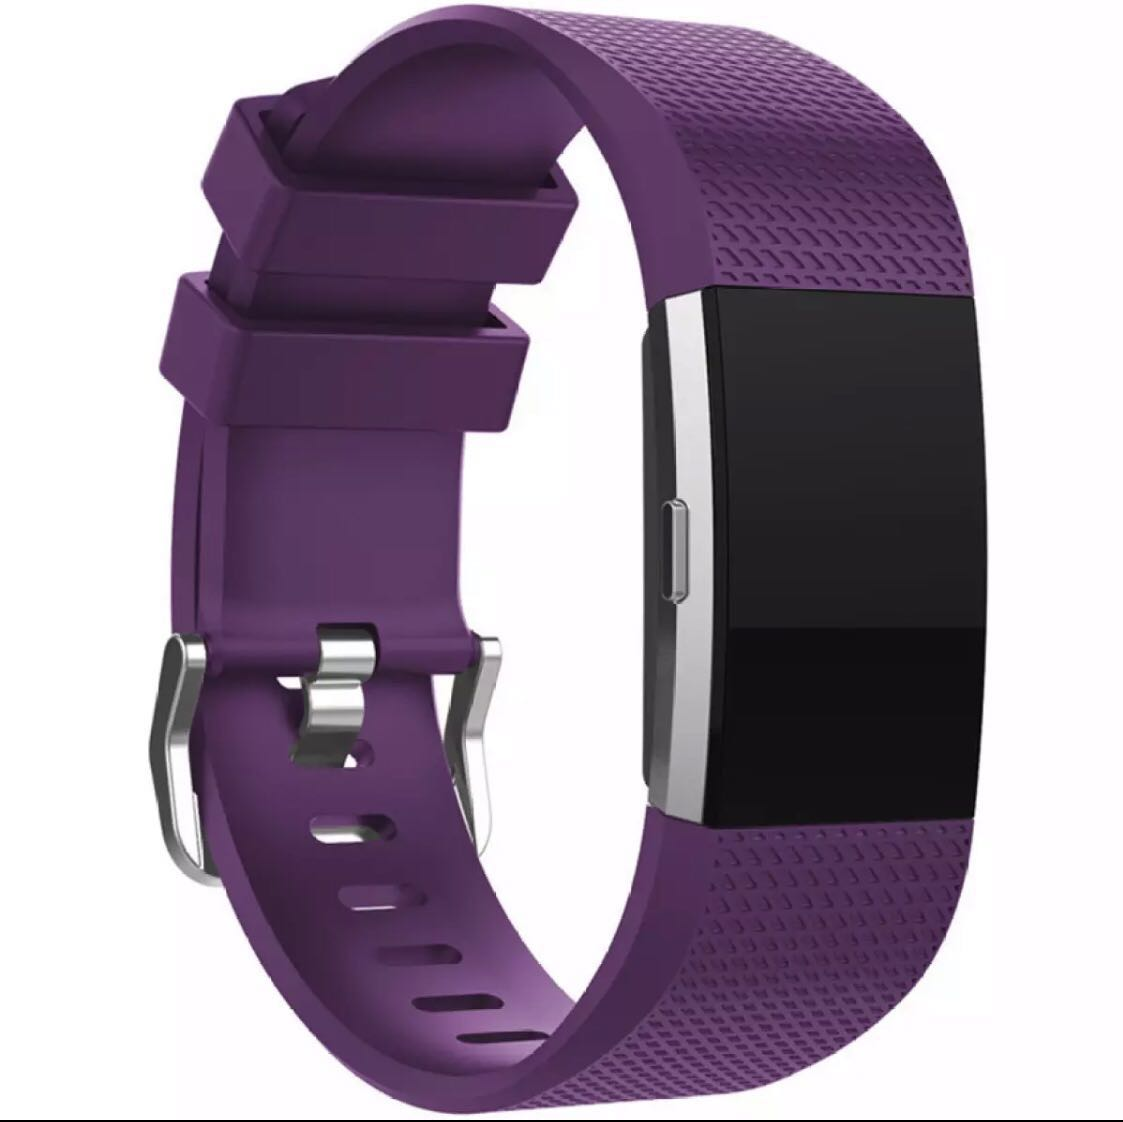 Fitbit Charge 2 Strap Band Silicone Adjustable - Purple - More Colours in  Shop